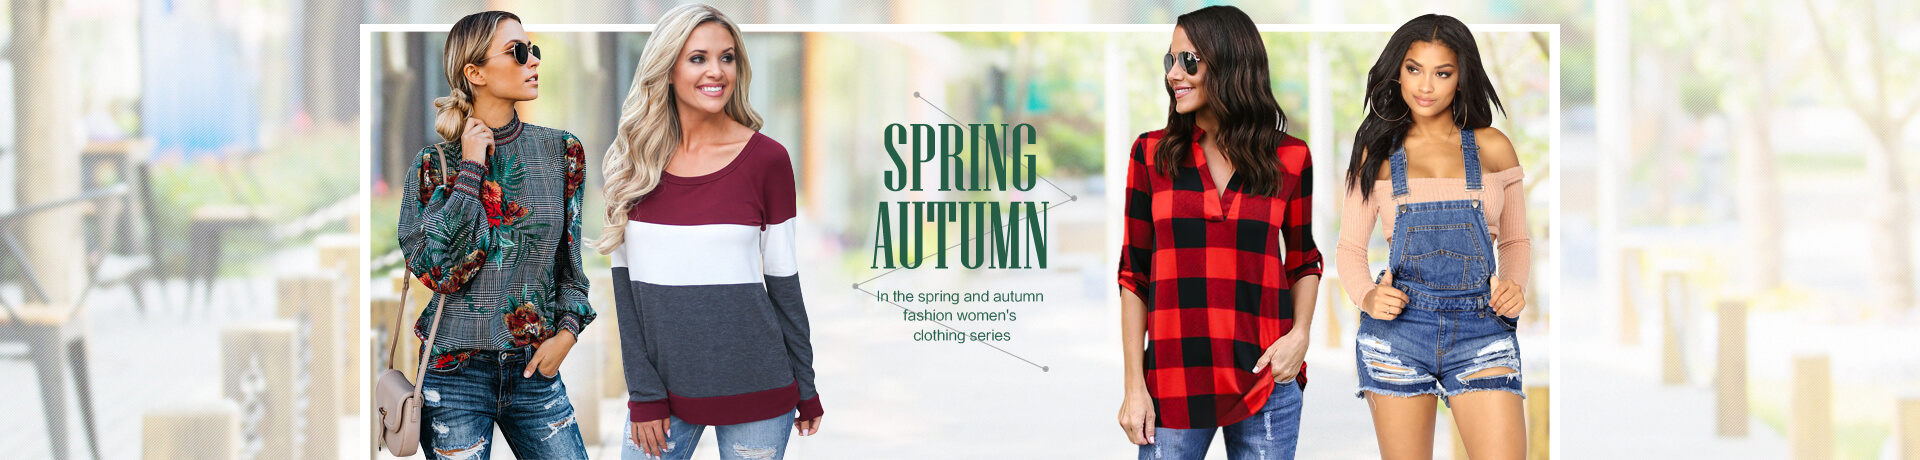 Spring & Autumn Women's Clothing